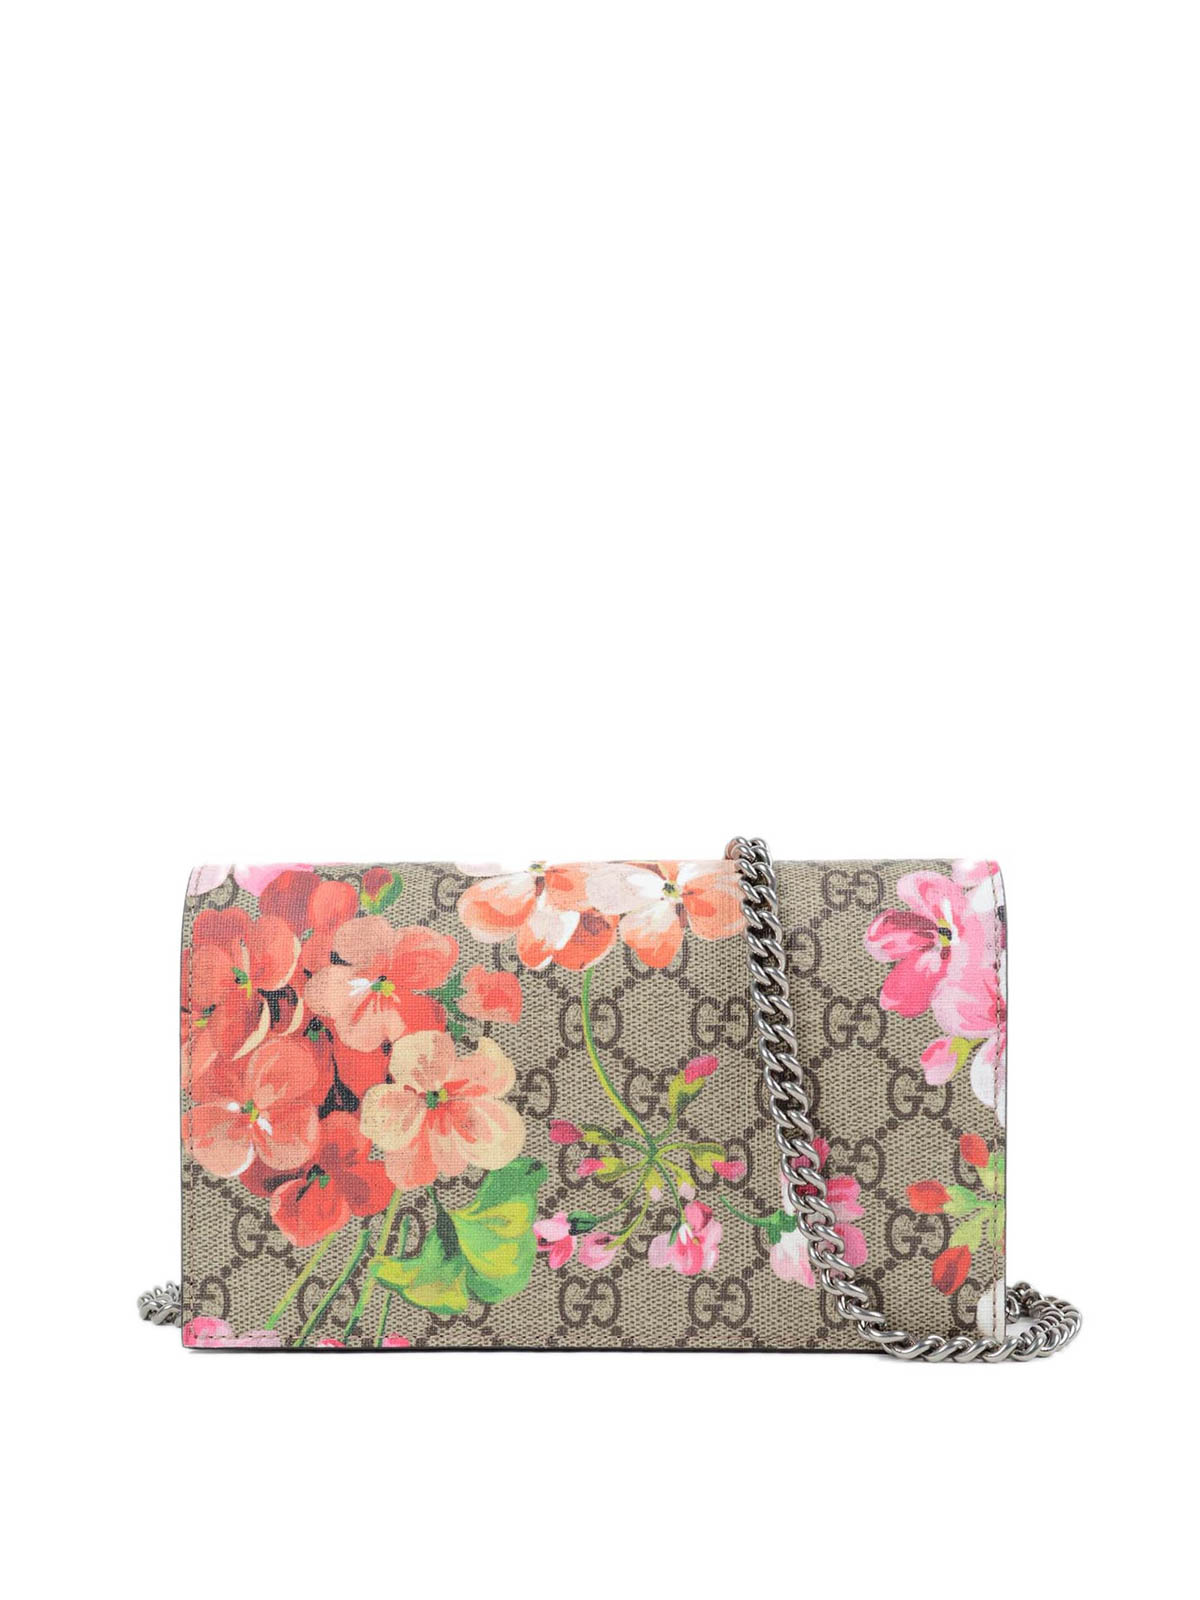 ed06fc48ed4 Gucci - Bloom printed clutch - clutches - 402724 KU2IN 8693 | iKRIX.com